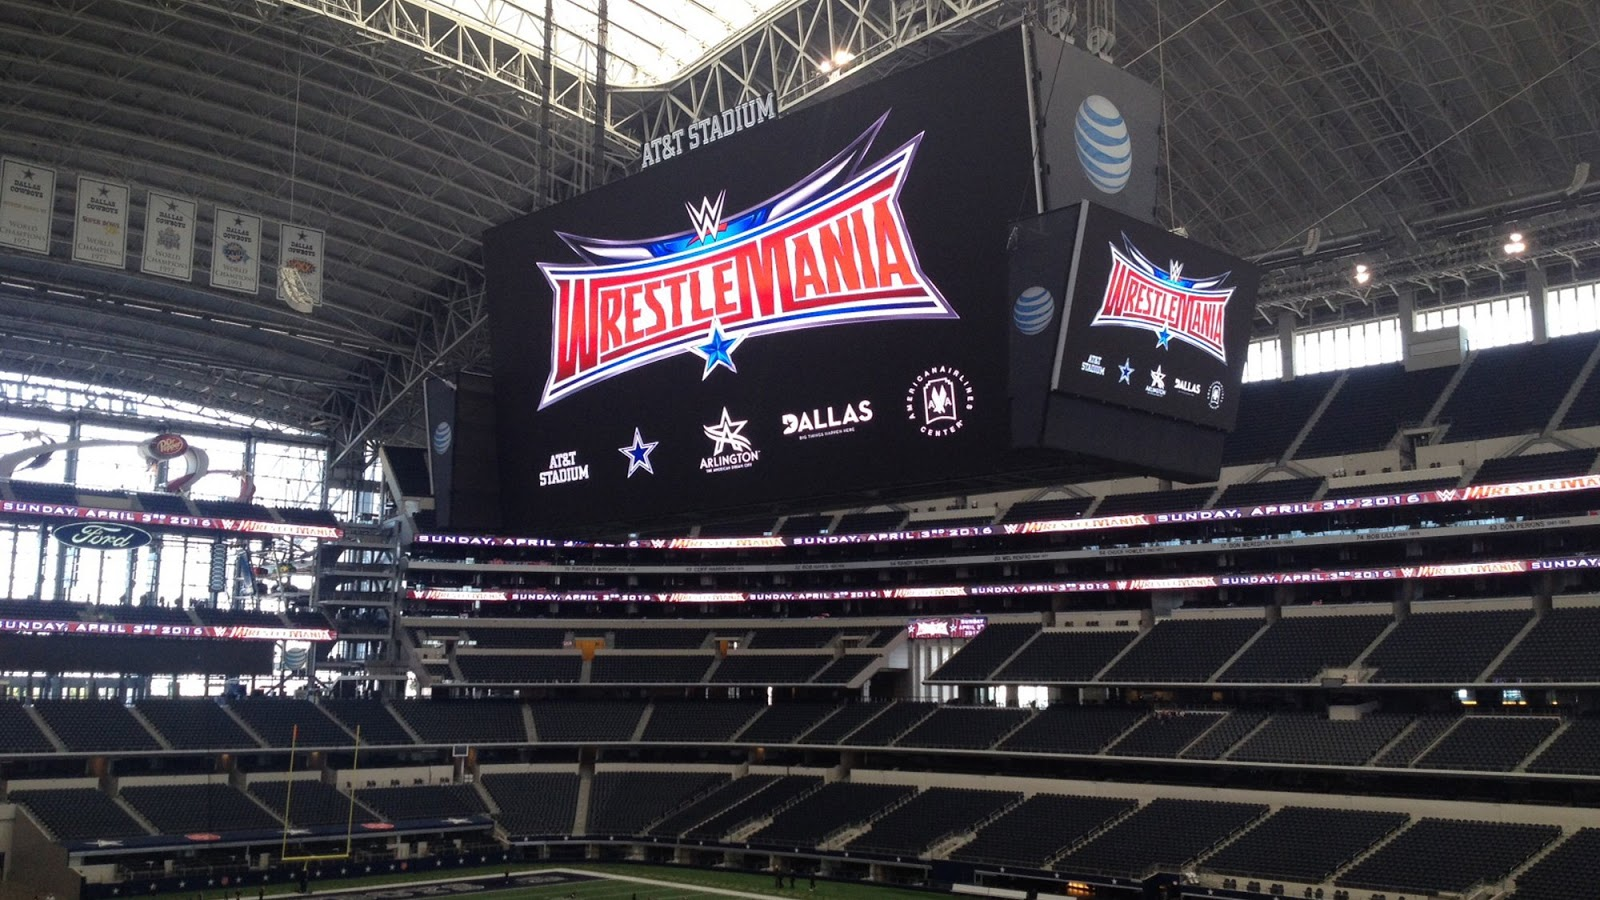 WWE WrestleMania 33 Location, Date and Logo Revealed | Bleacher Report